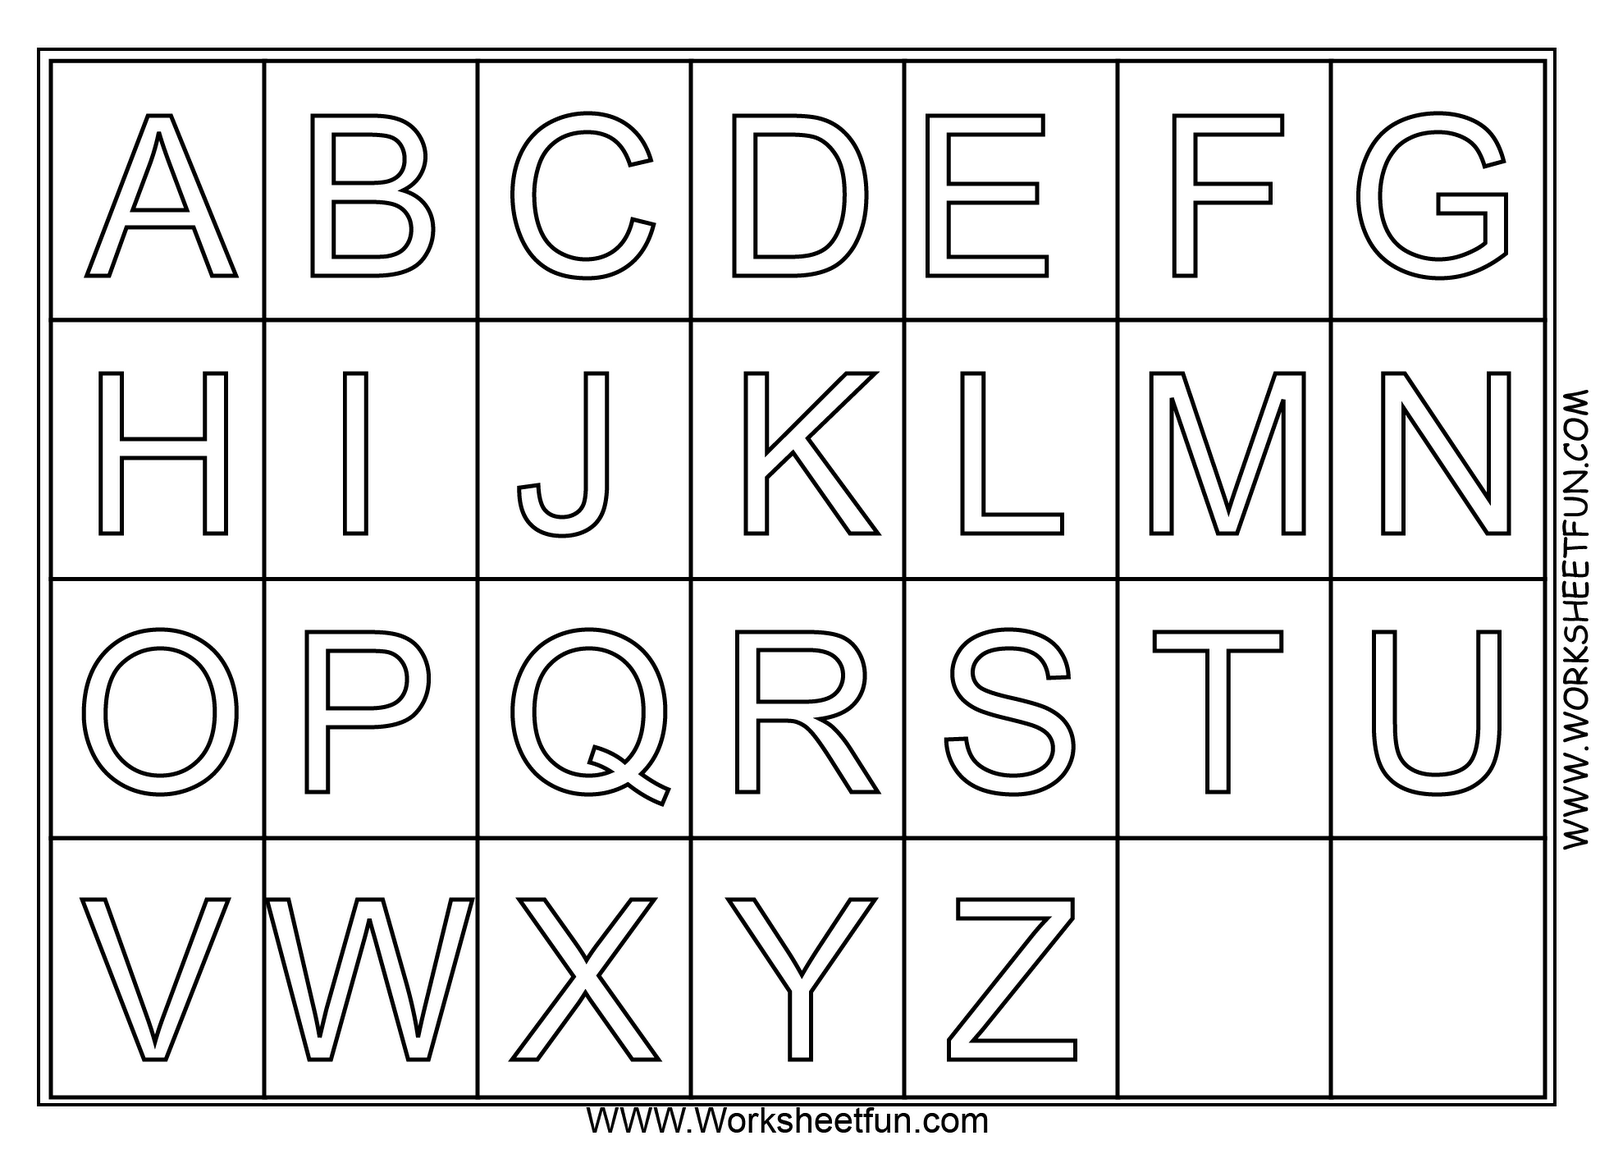 worksheet Alphabet Worksheets For Preschool a z alphabet coloring pages download and print for free pre k to worksheet letters worksheets preschool